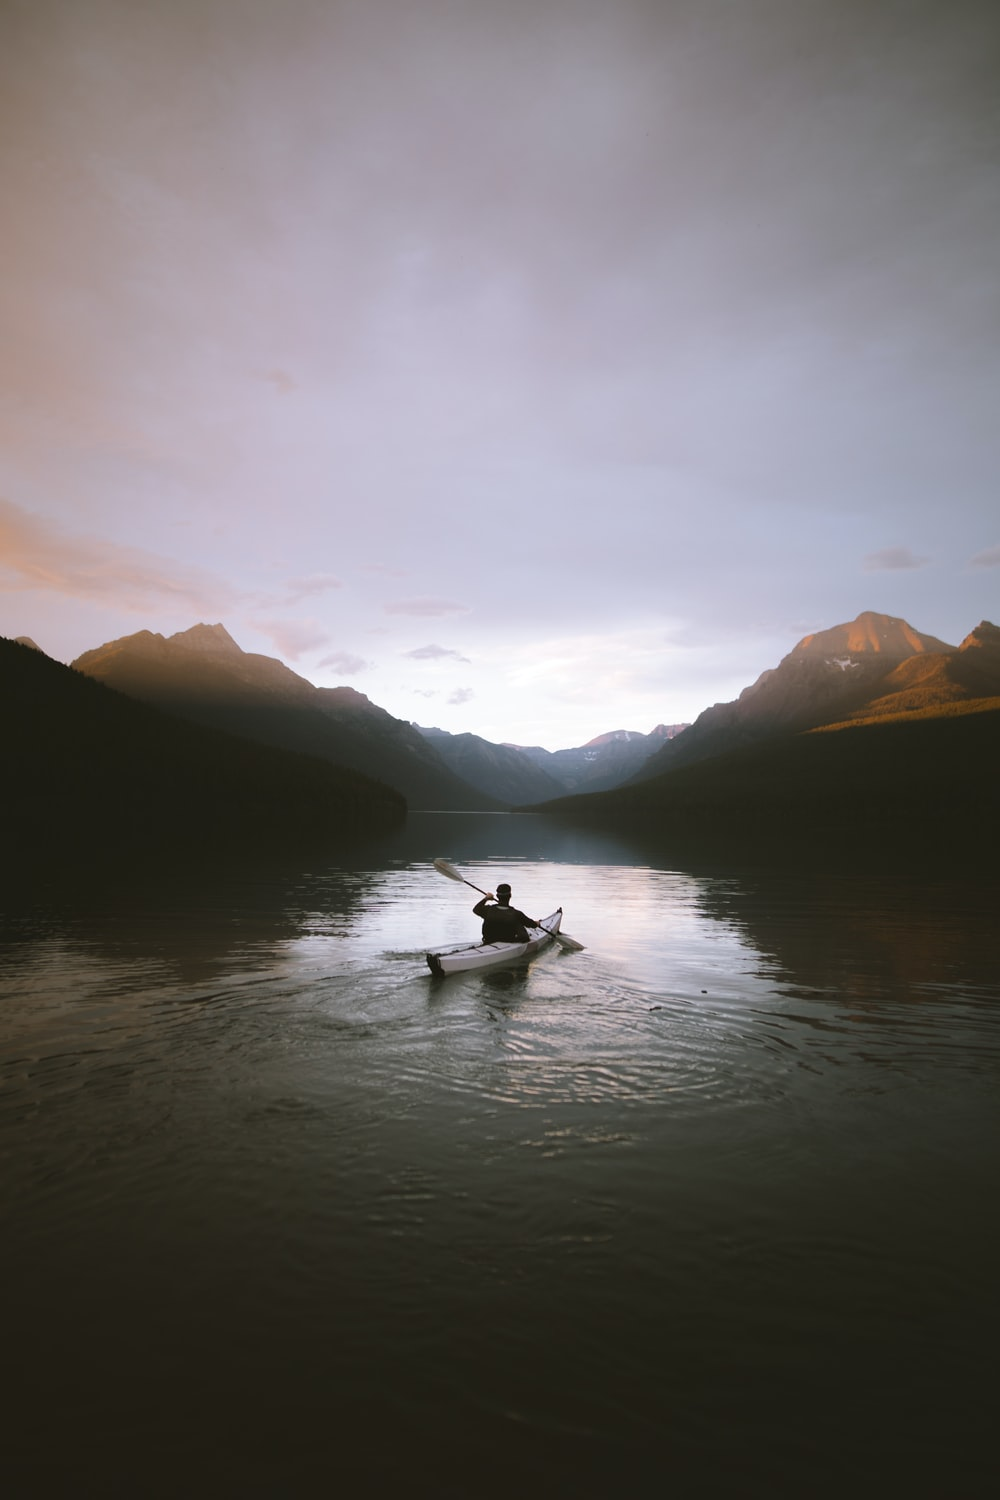 man paddling on boat on body of water